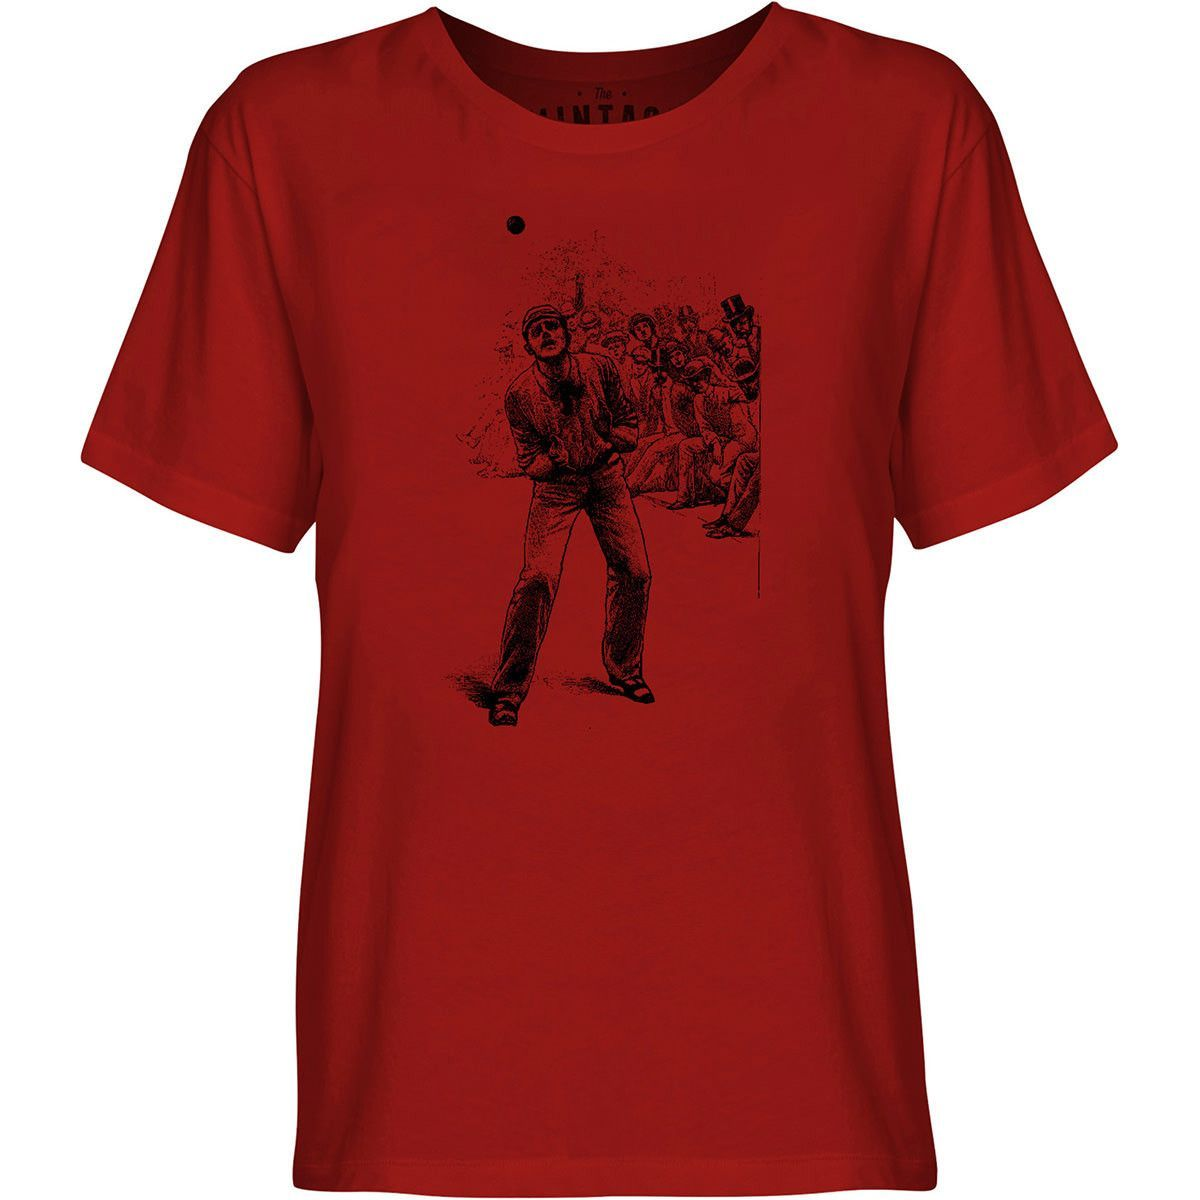 Mintage Cricket Catch Youth Fine Jersey T-Shirt